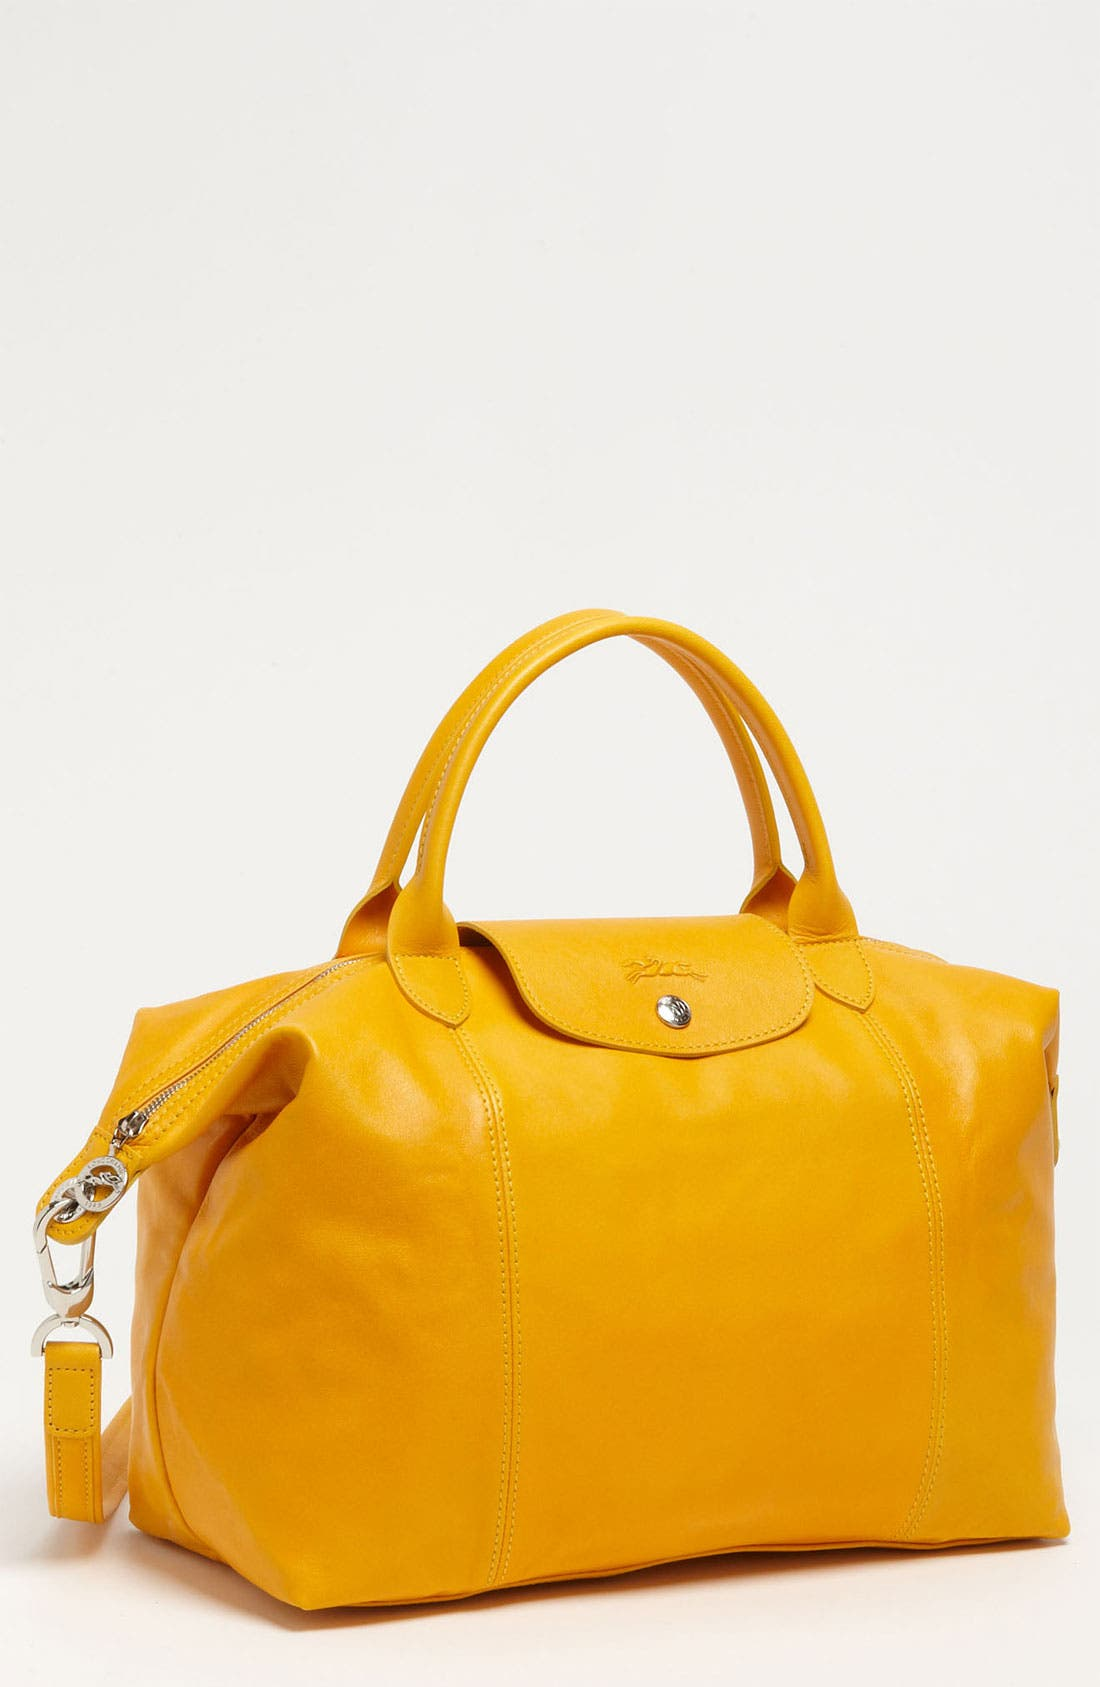 Medium 'Le Pliage Cuir' Leather Top Handle Tote,                             Main thumbnail 32, color,